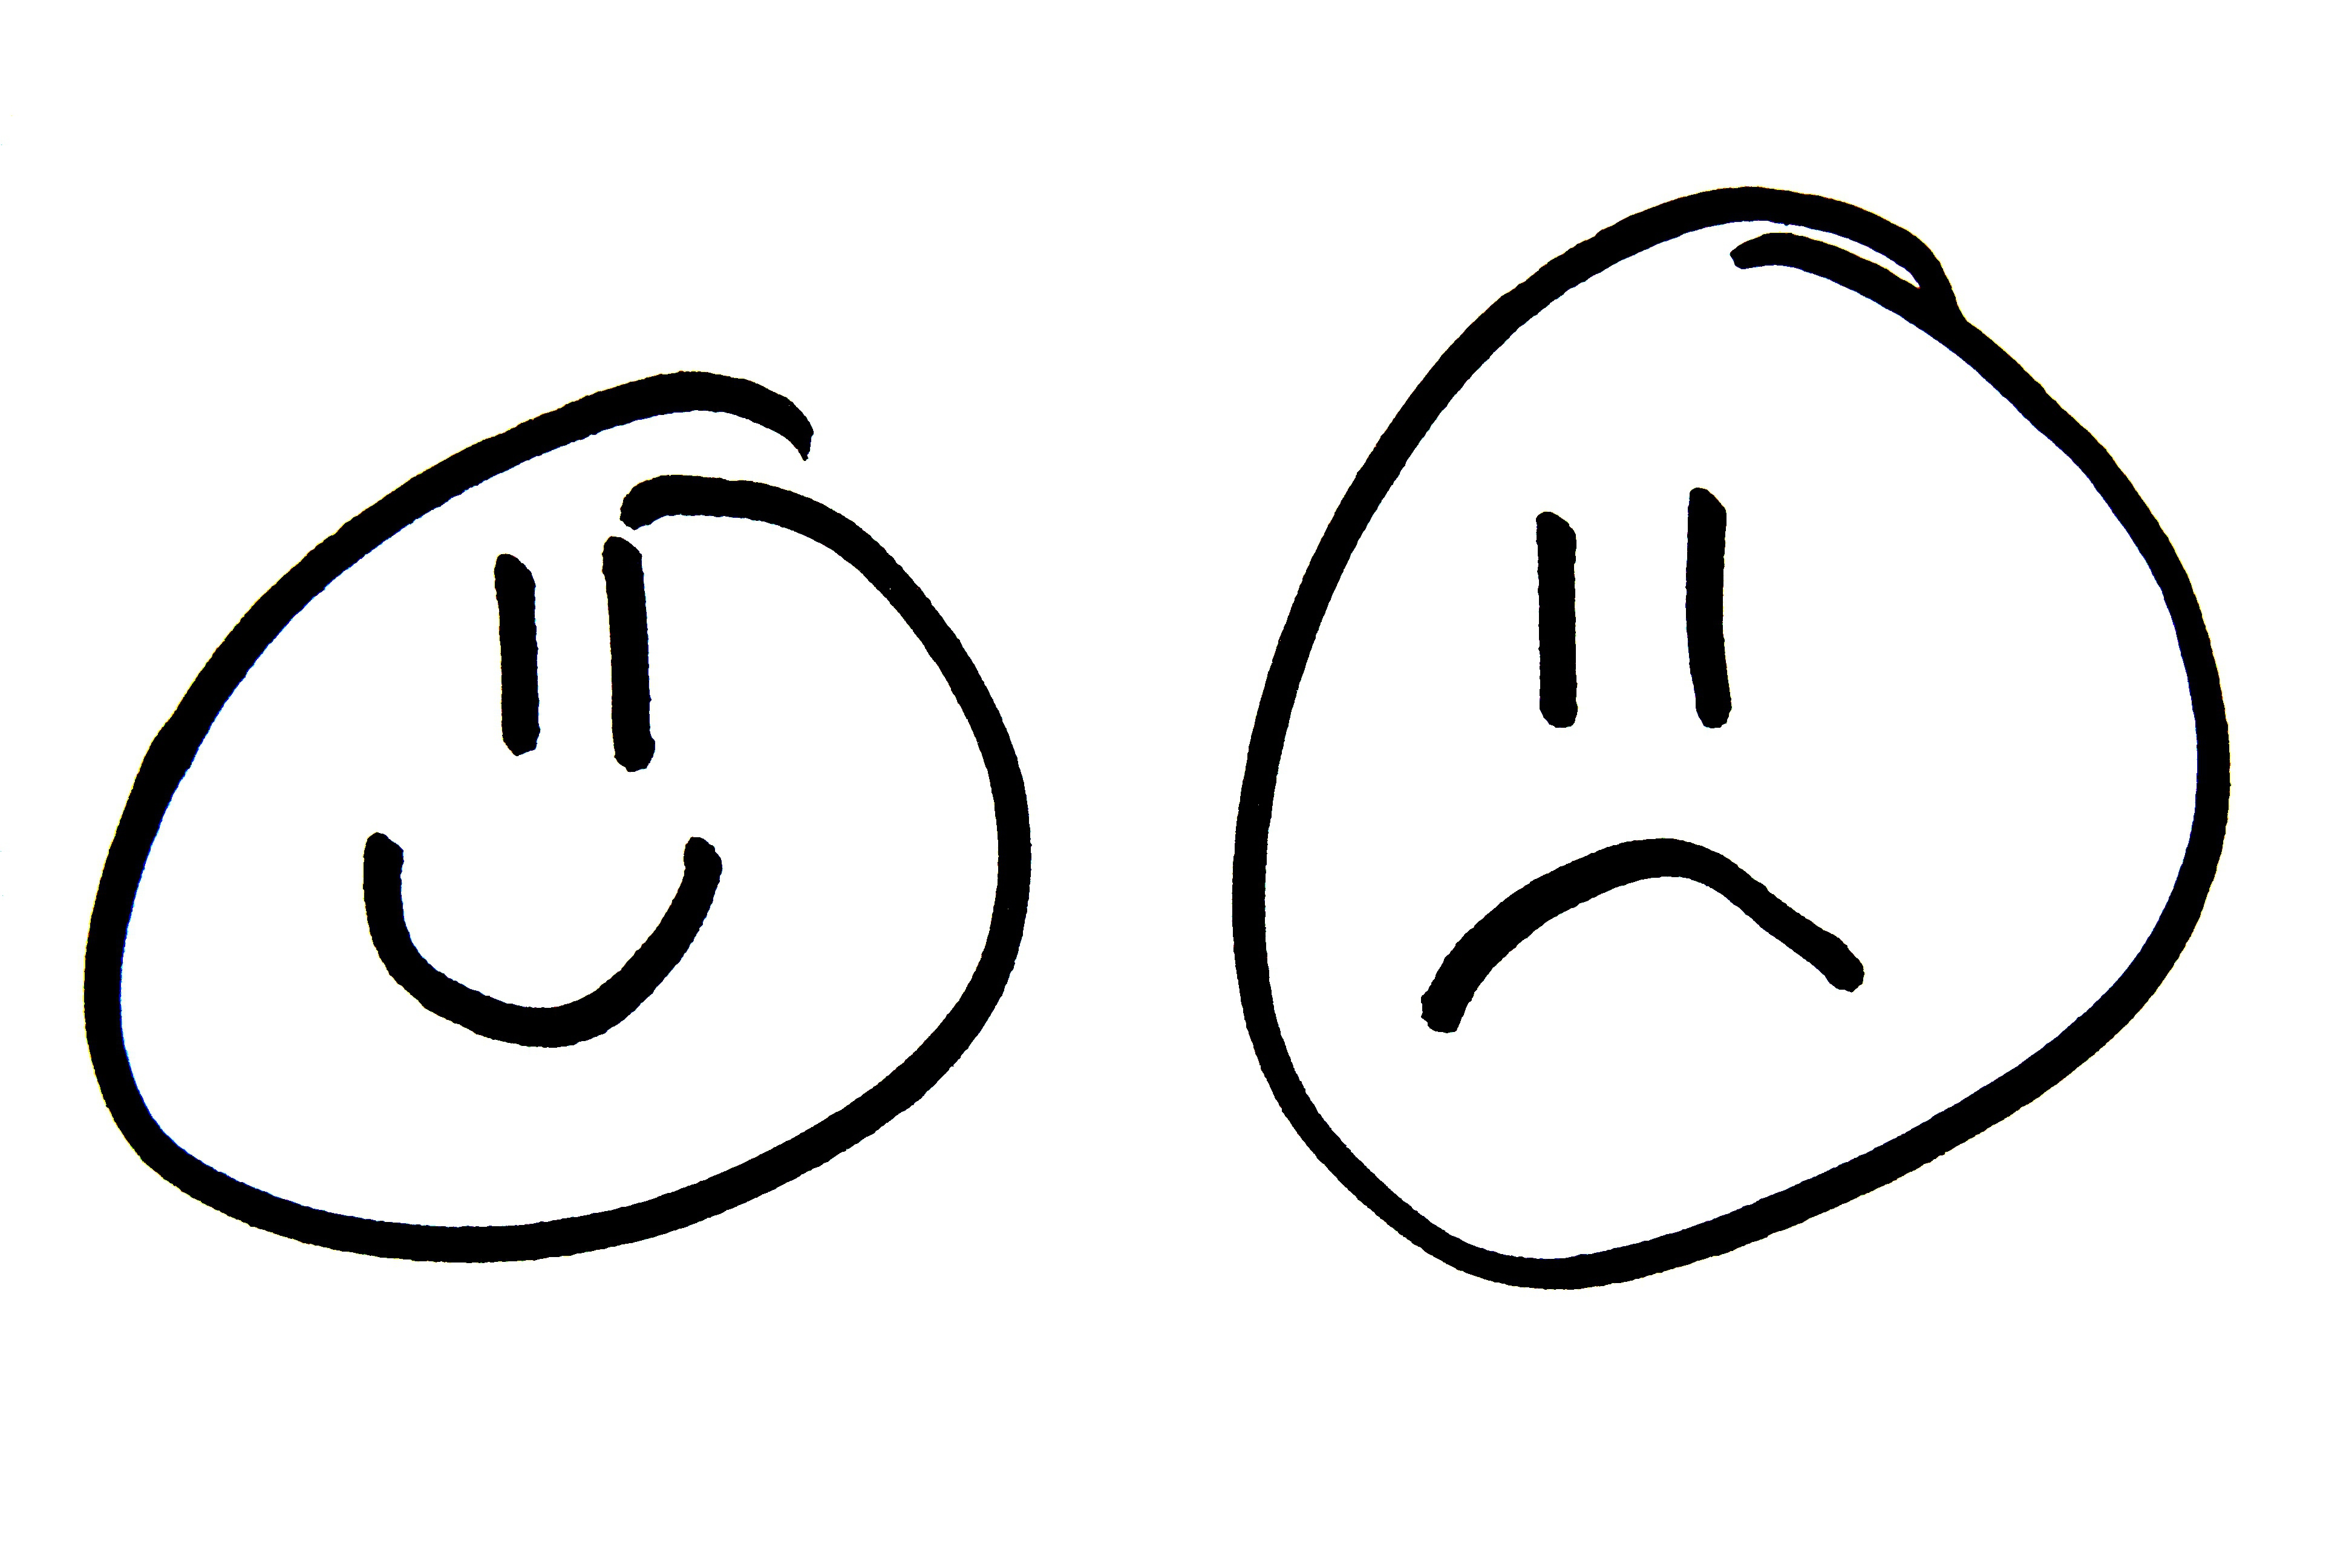 3888x2592 Sad Face Smiley Face Clipart Black And White Free Clipart